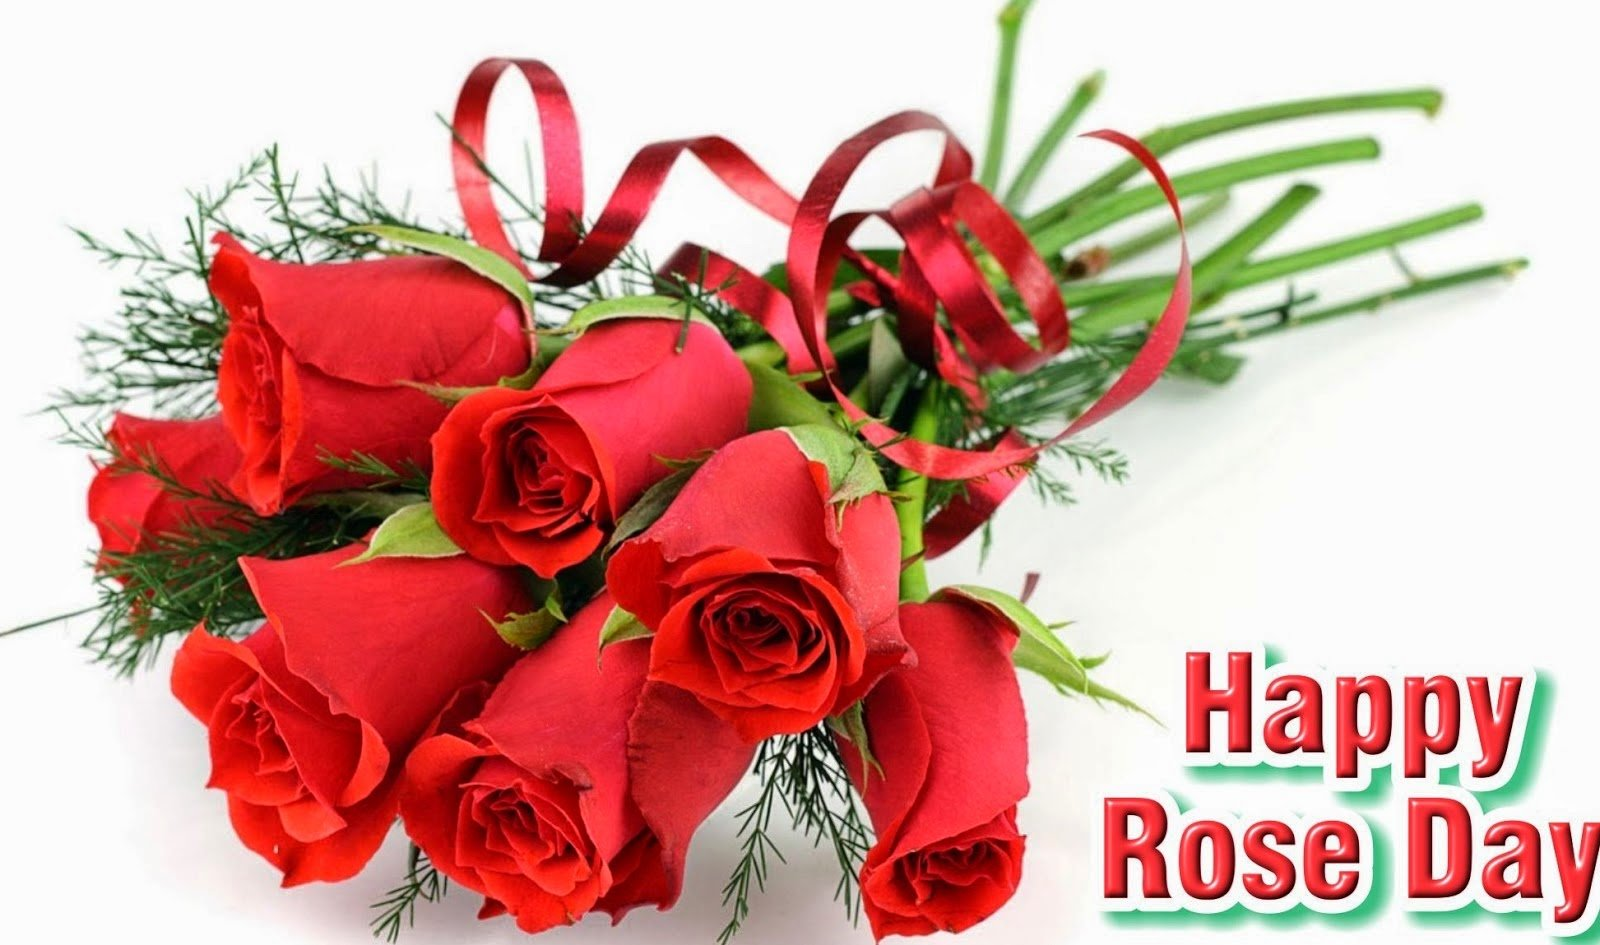 Rose Day Photo Gallery